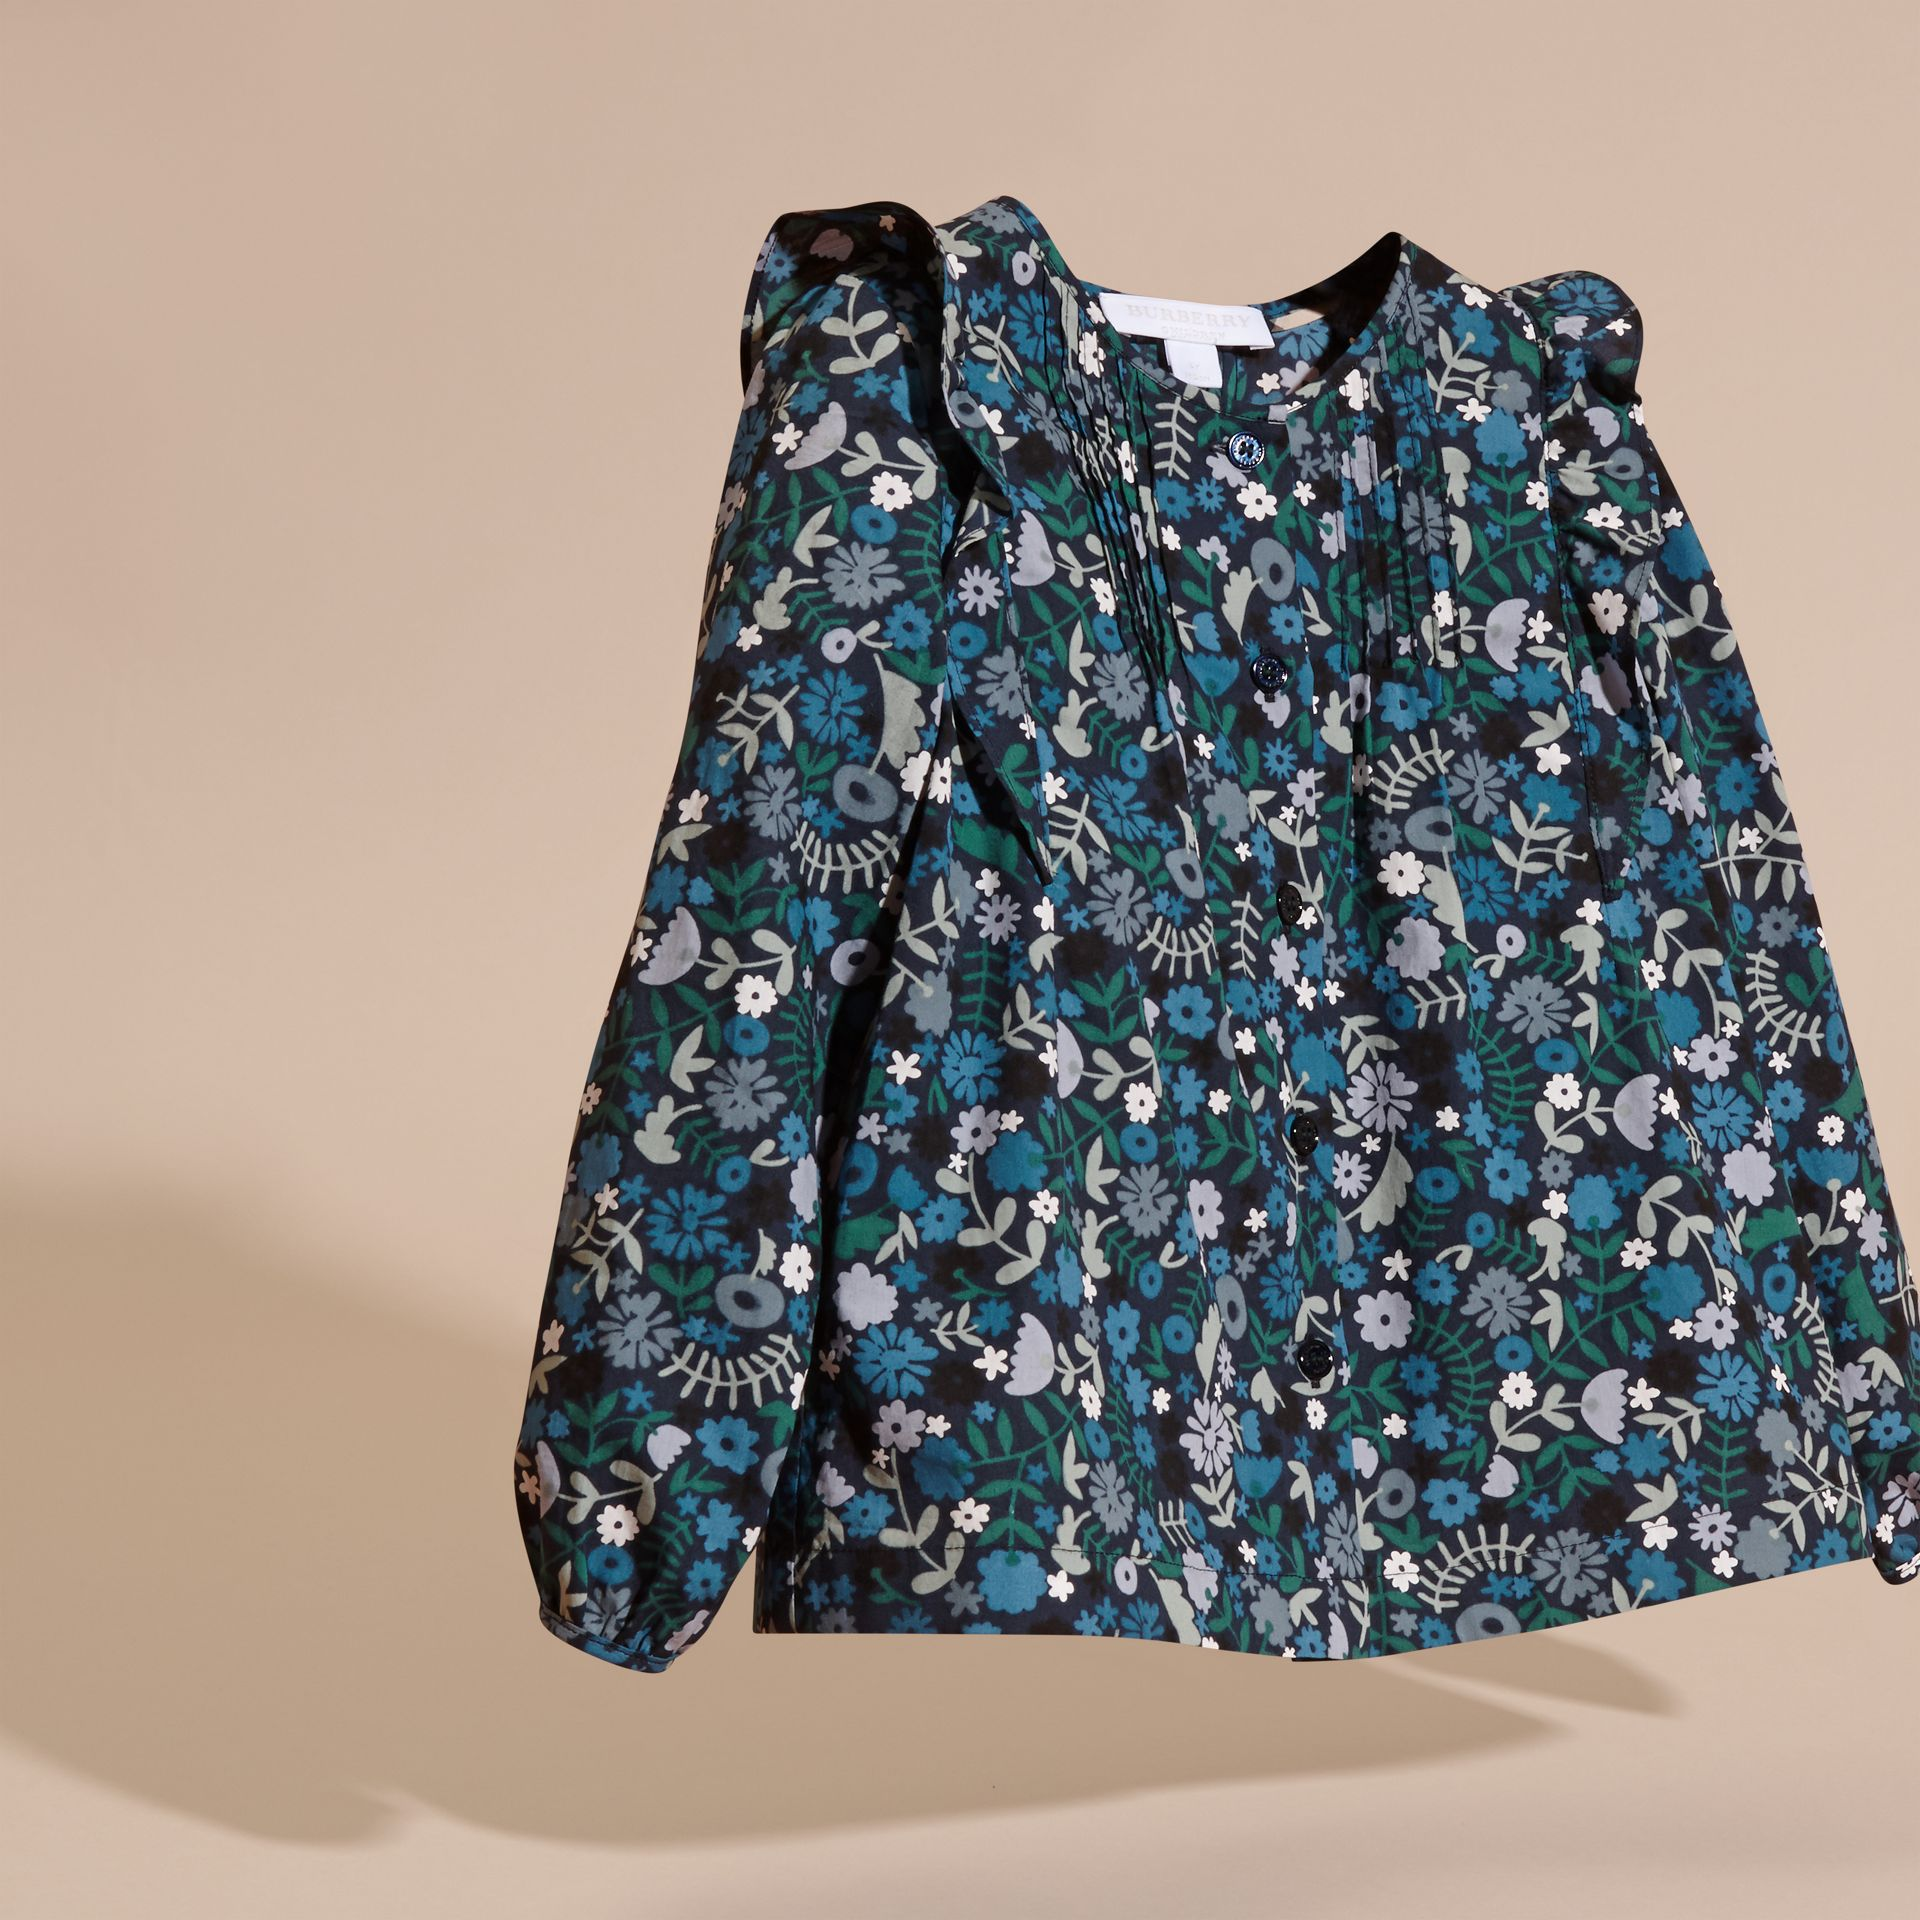 Hydrangea blue Floral Print Cotton Shirt with Ruffle Detail Hydrangea Blue - gallery image 3